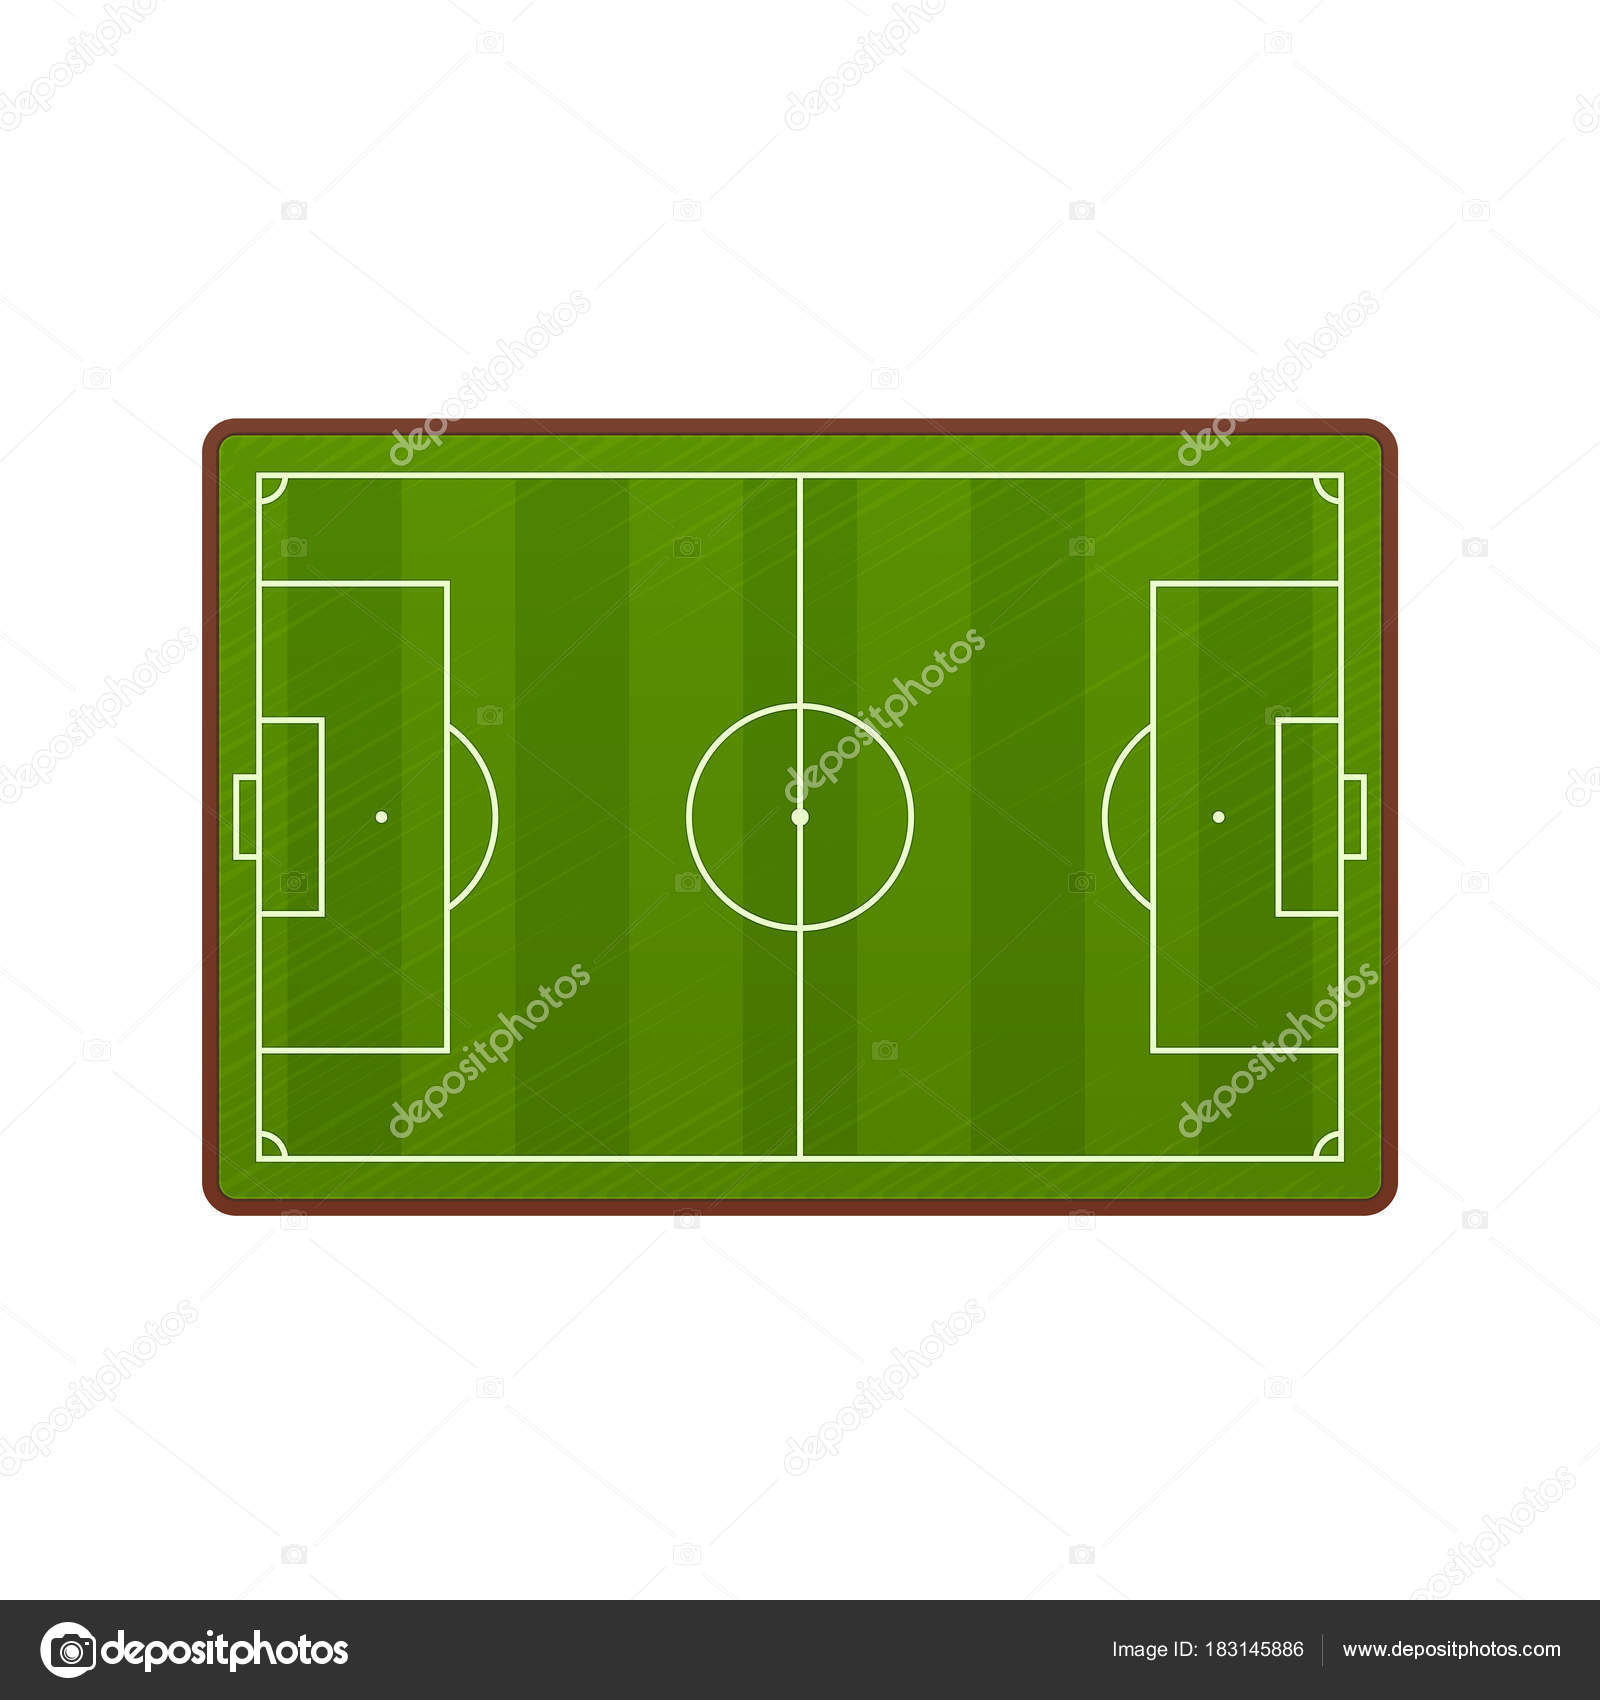 Realistic Football Field Template Playground With Green Grass And